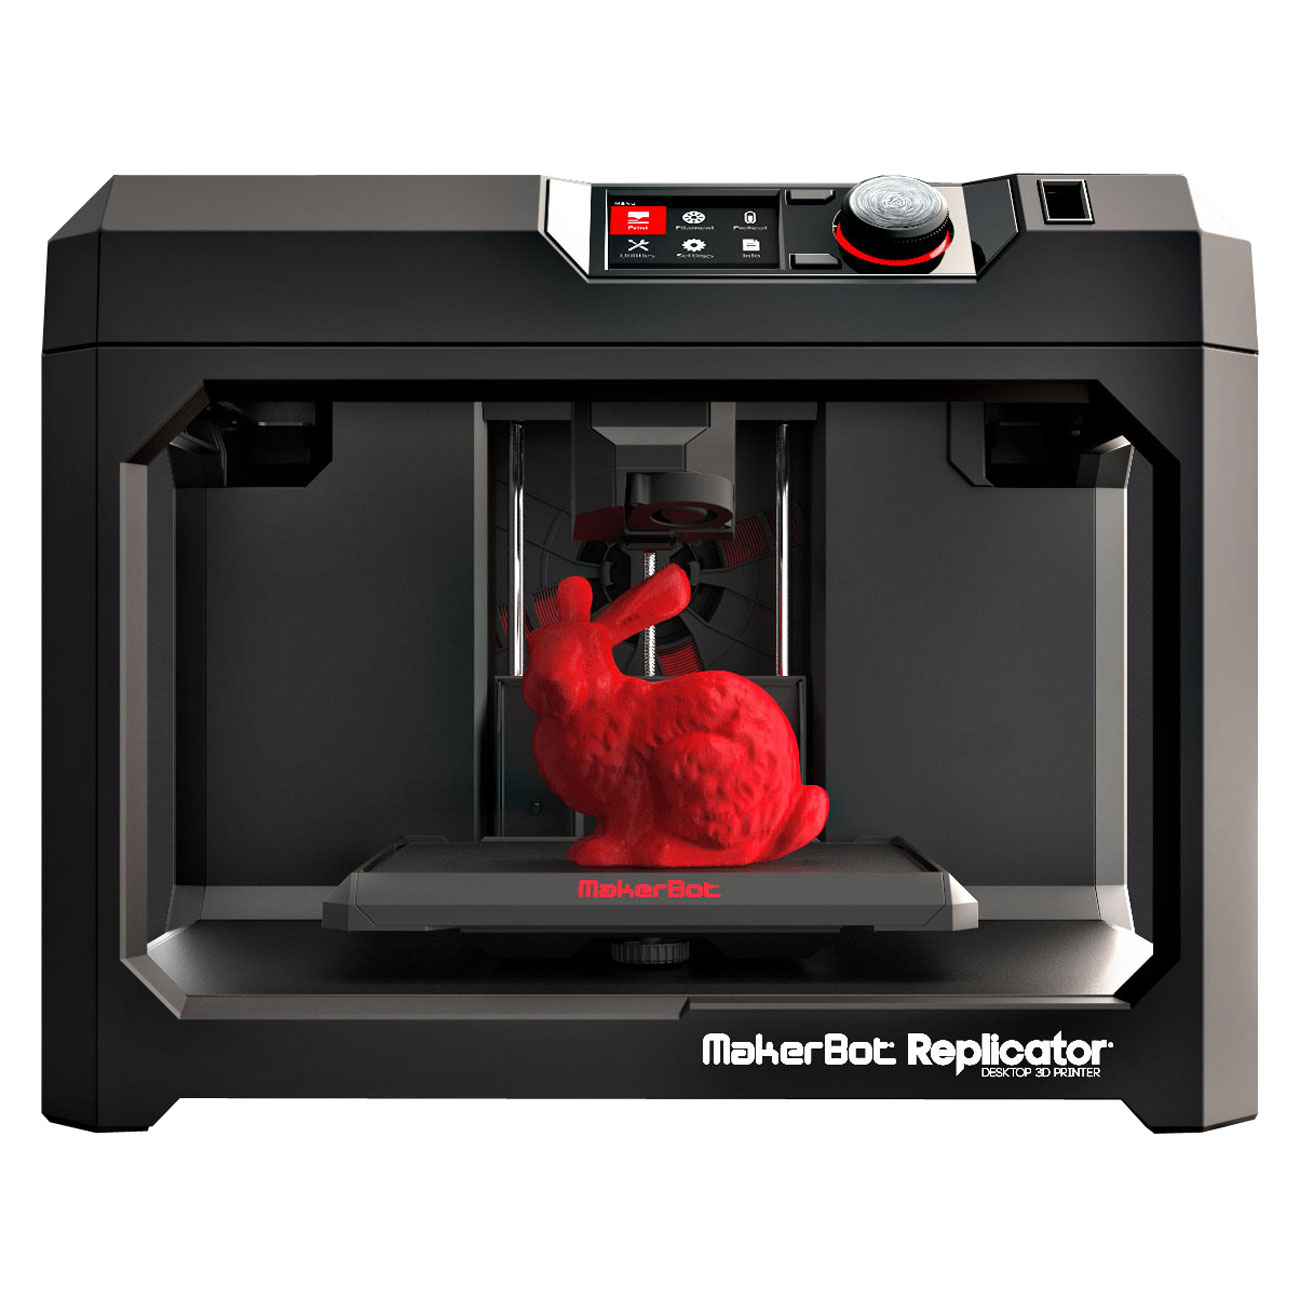 Makerbot replicator 5th imprimante 3d makerbot sur - Filament imprimante 3d ...